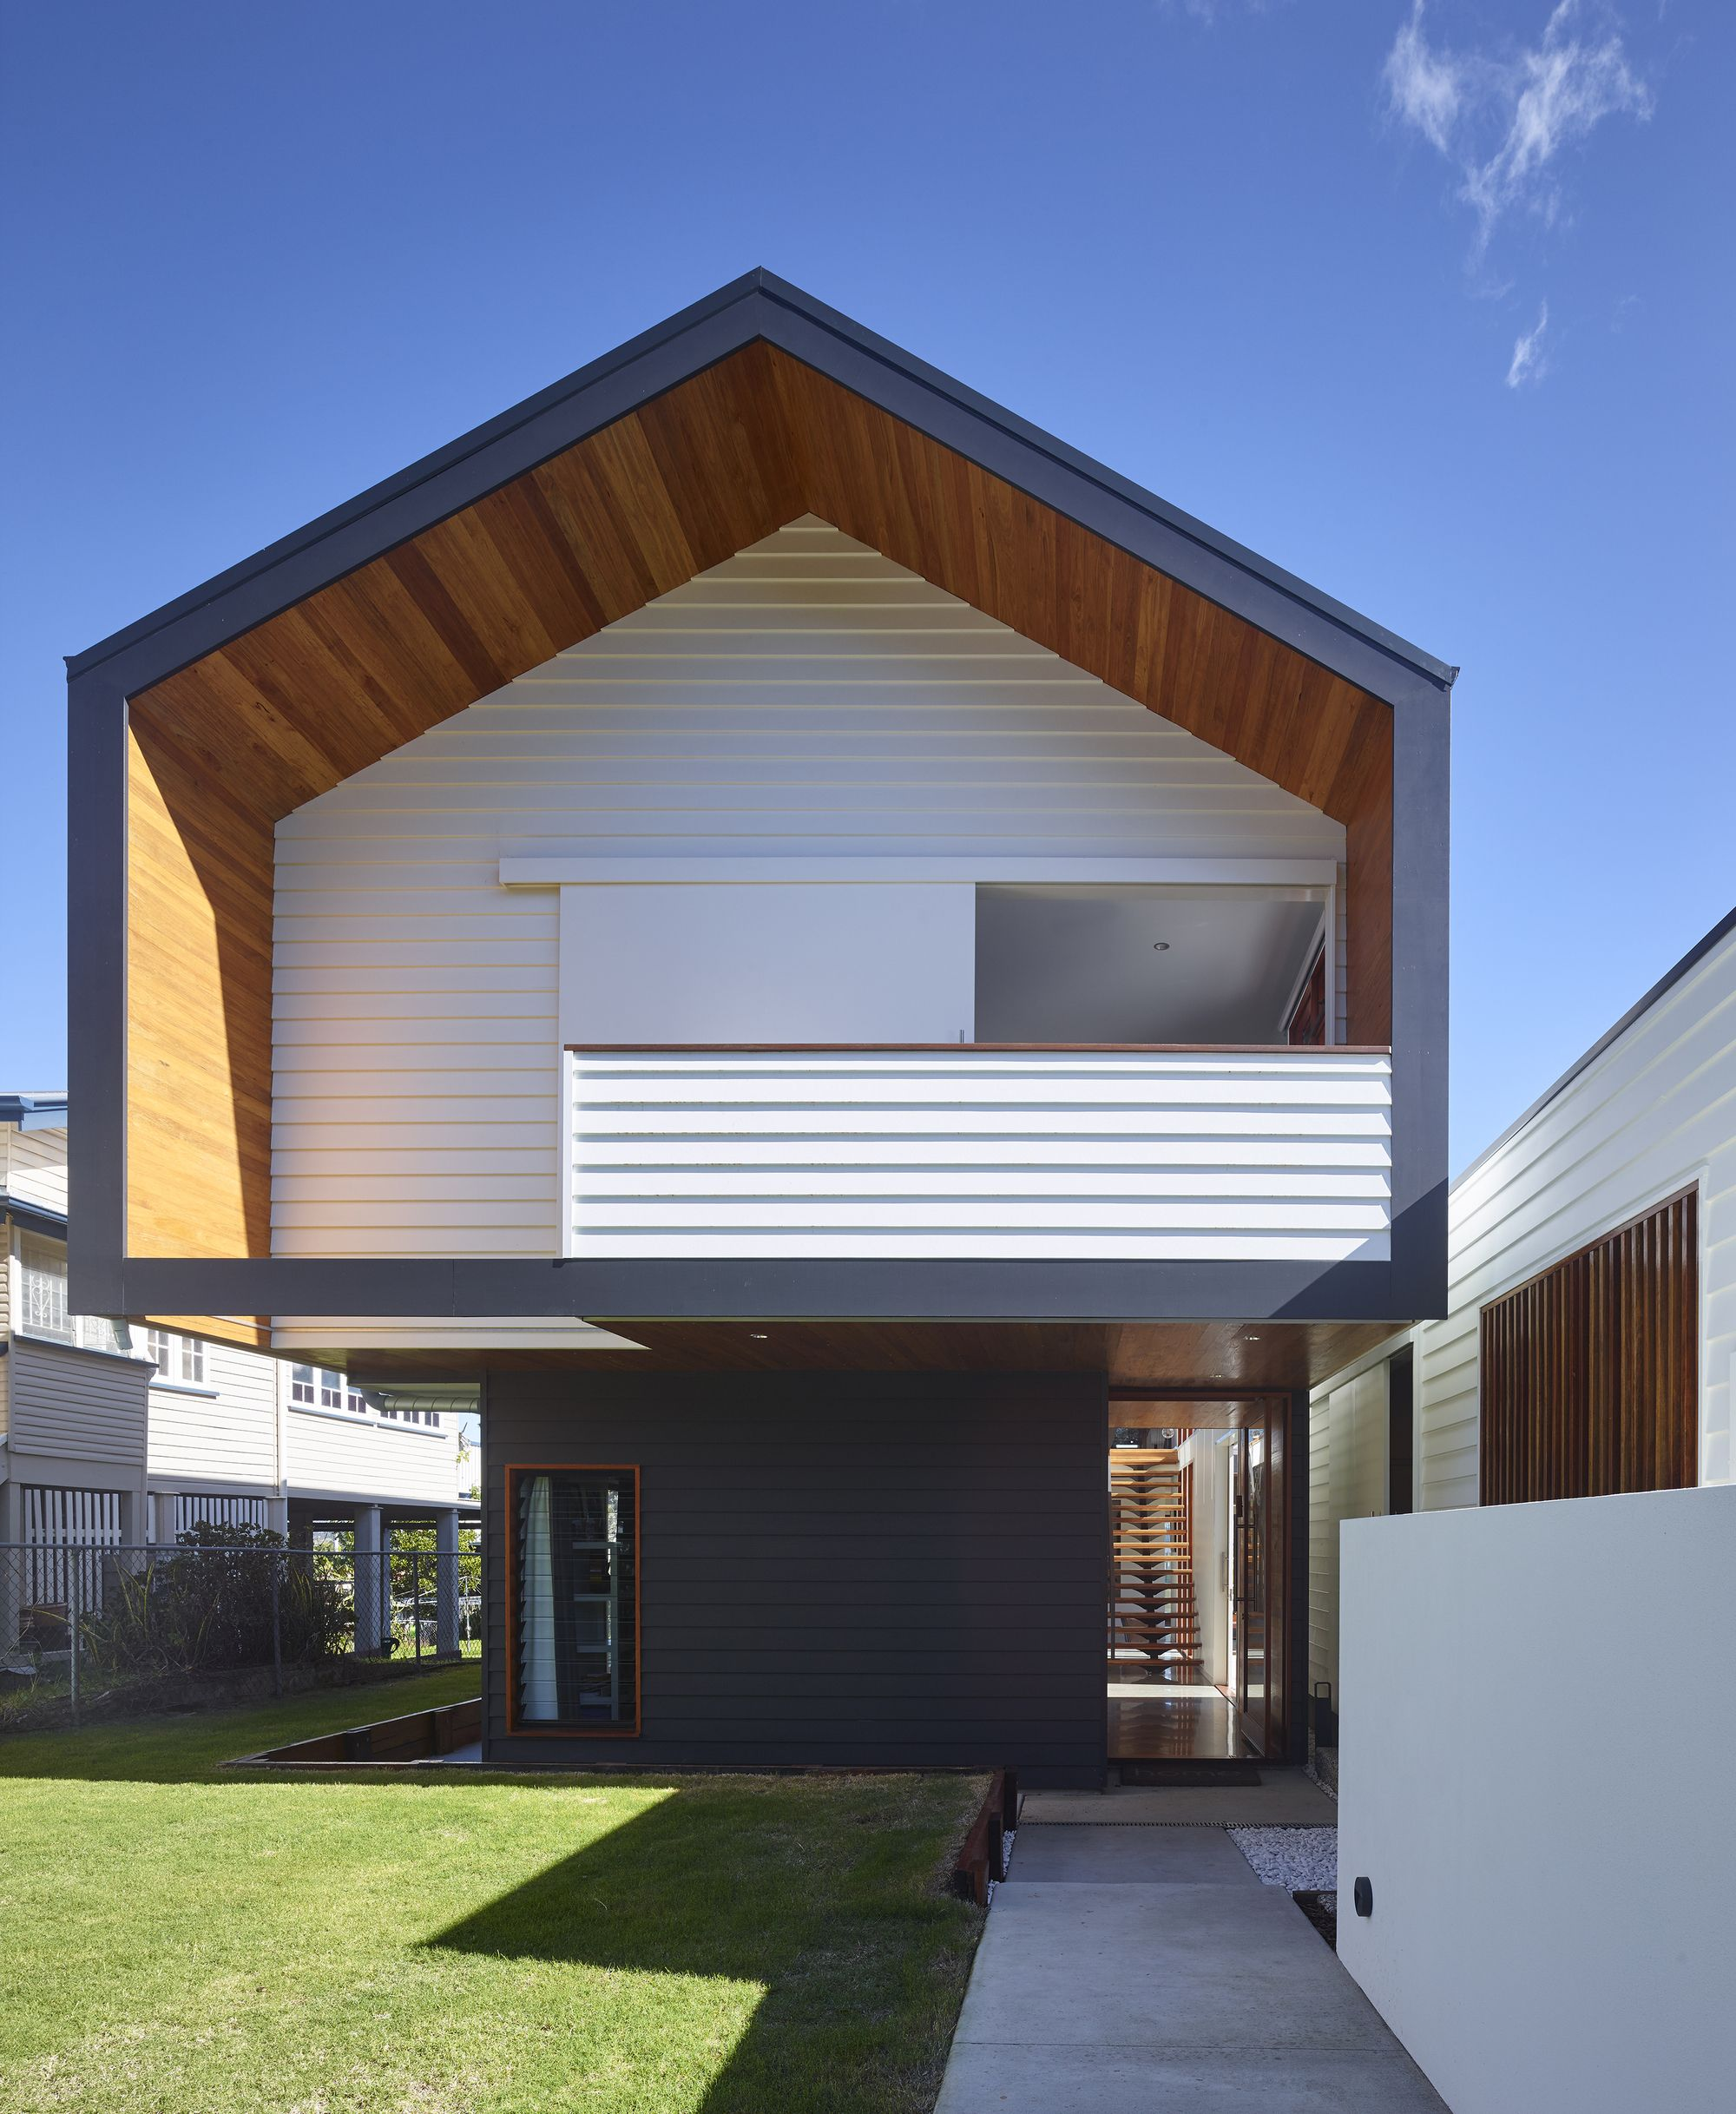 Image 1 Of 26 From Gallery Of Nundah House Kahrtel Photograph By Scott Burrows Modern Minimalist House Flat Roof Design Residential Architecture